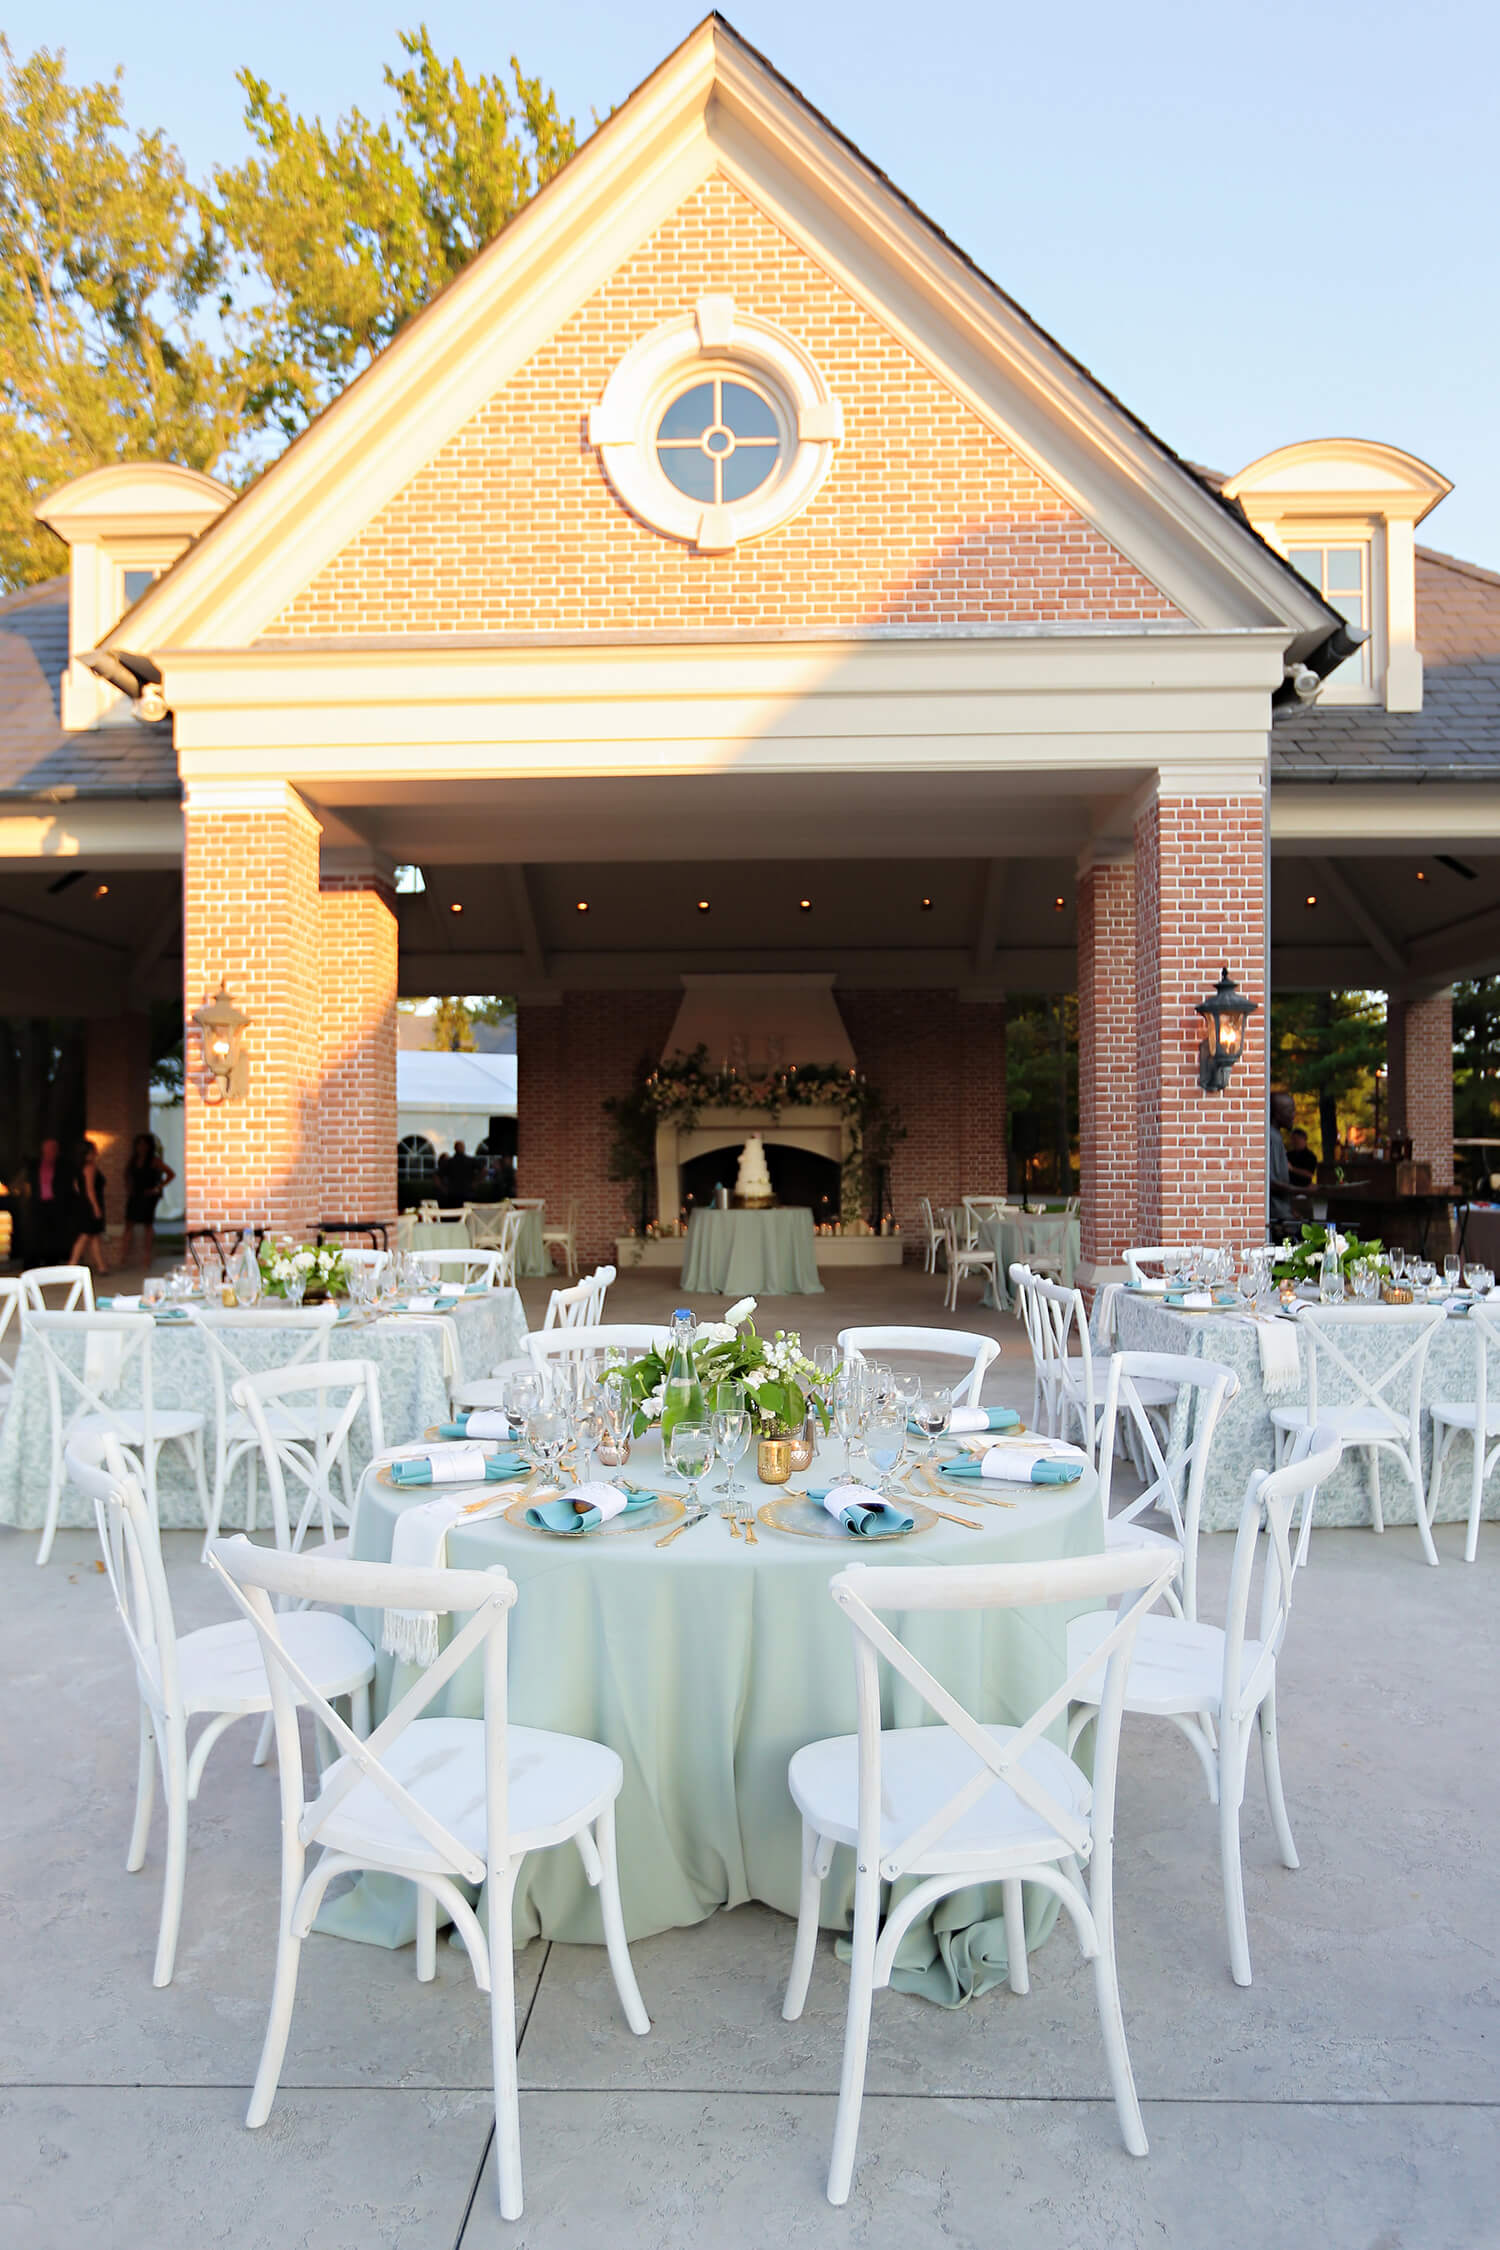 Chelsea-Tom-s-Wedding-ChelseaTomWedding-0282